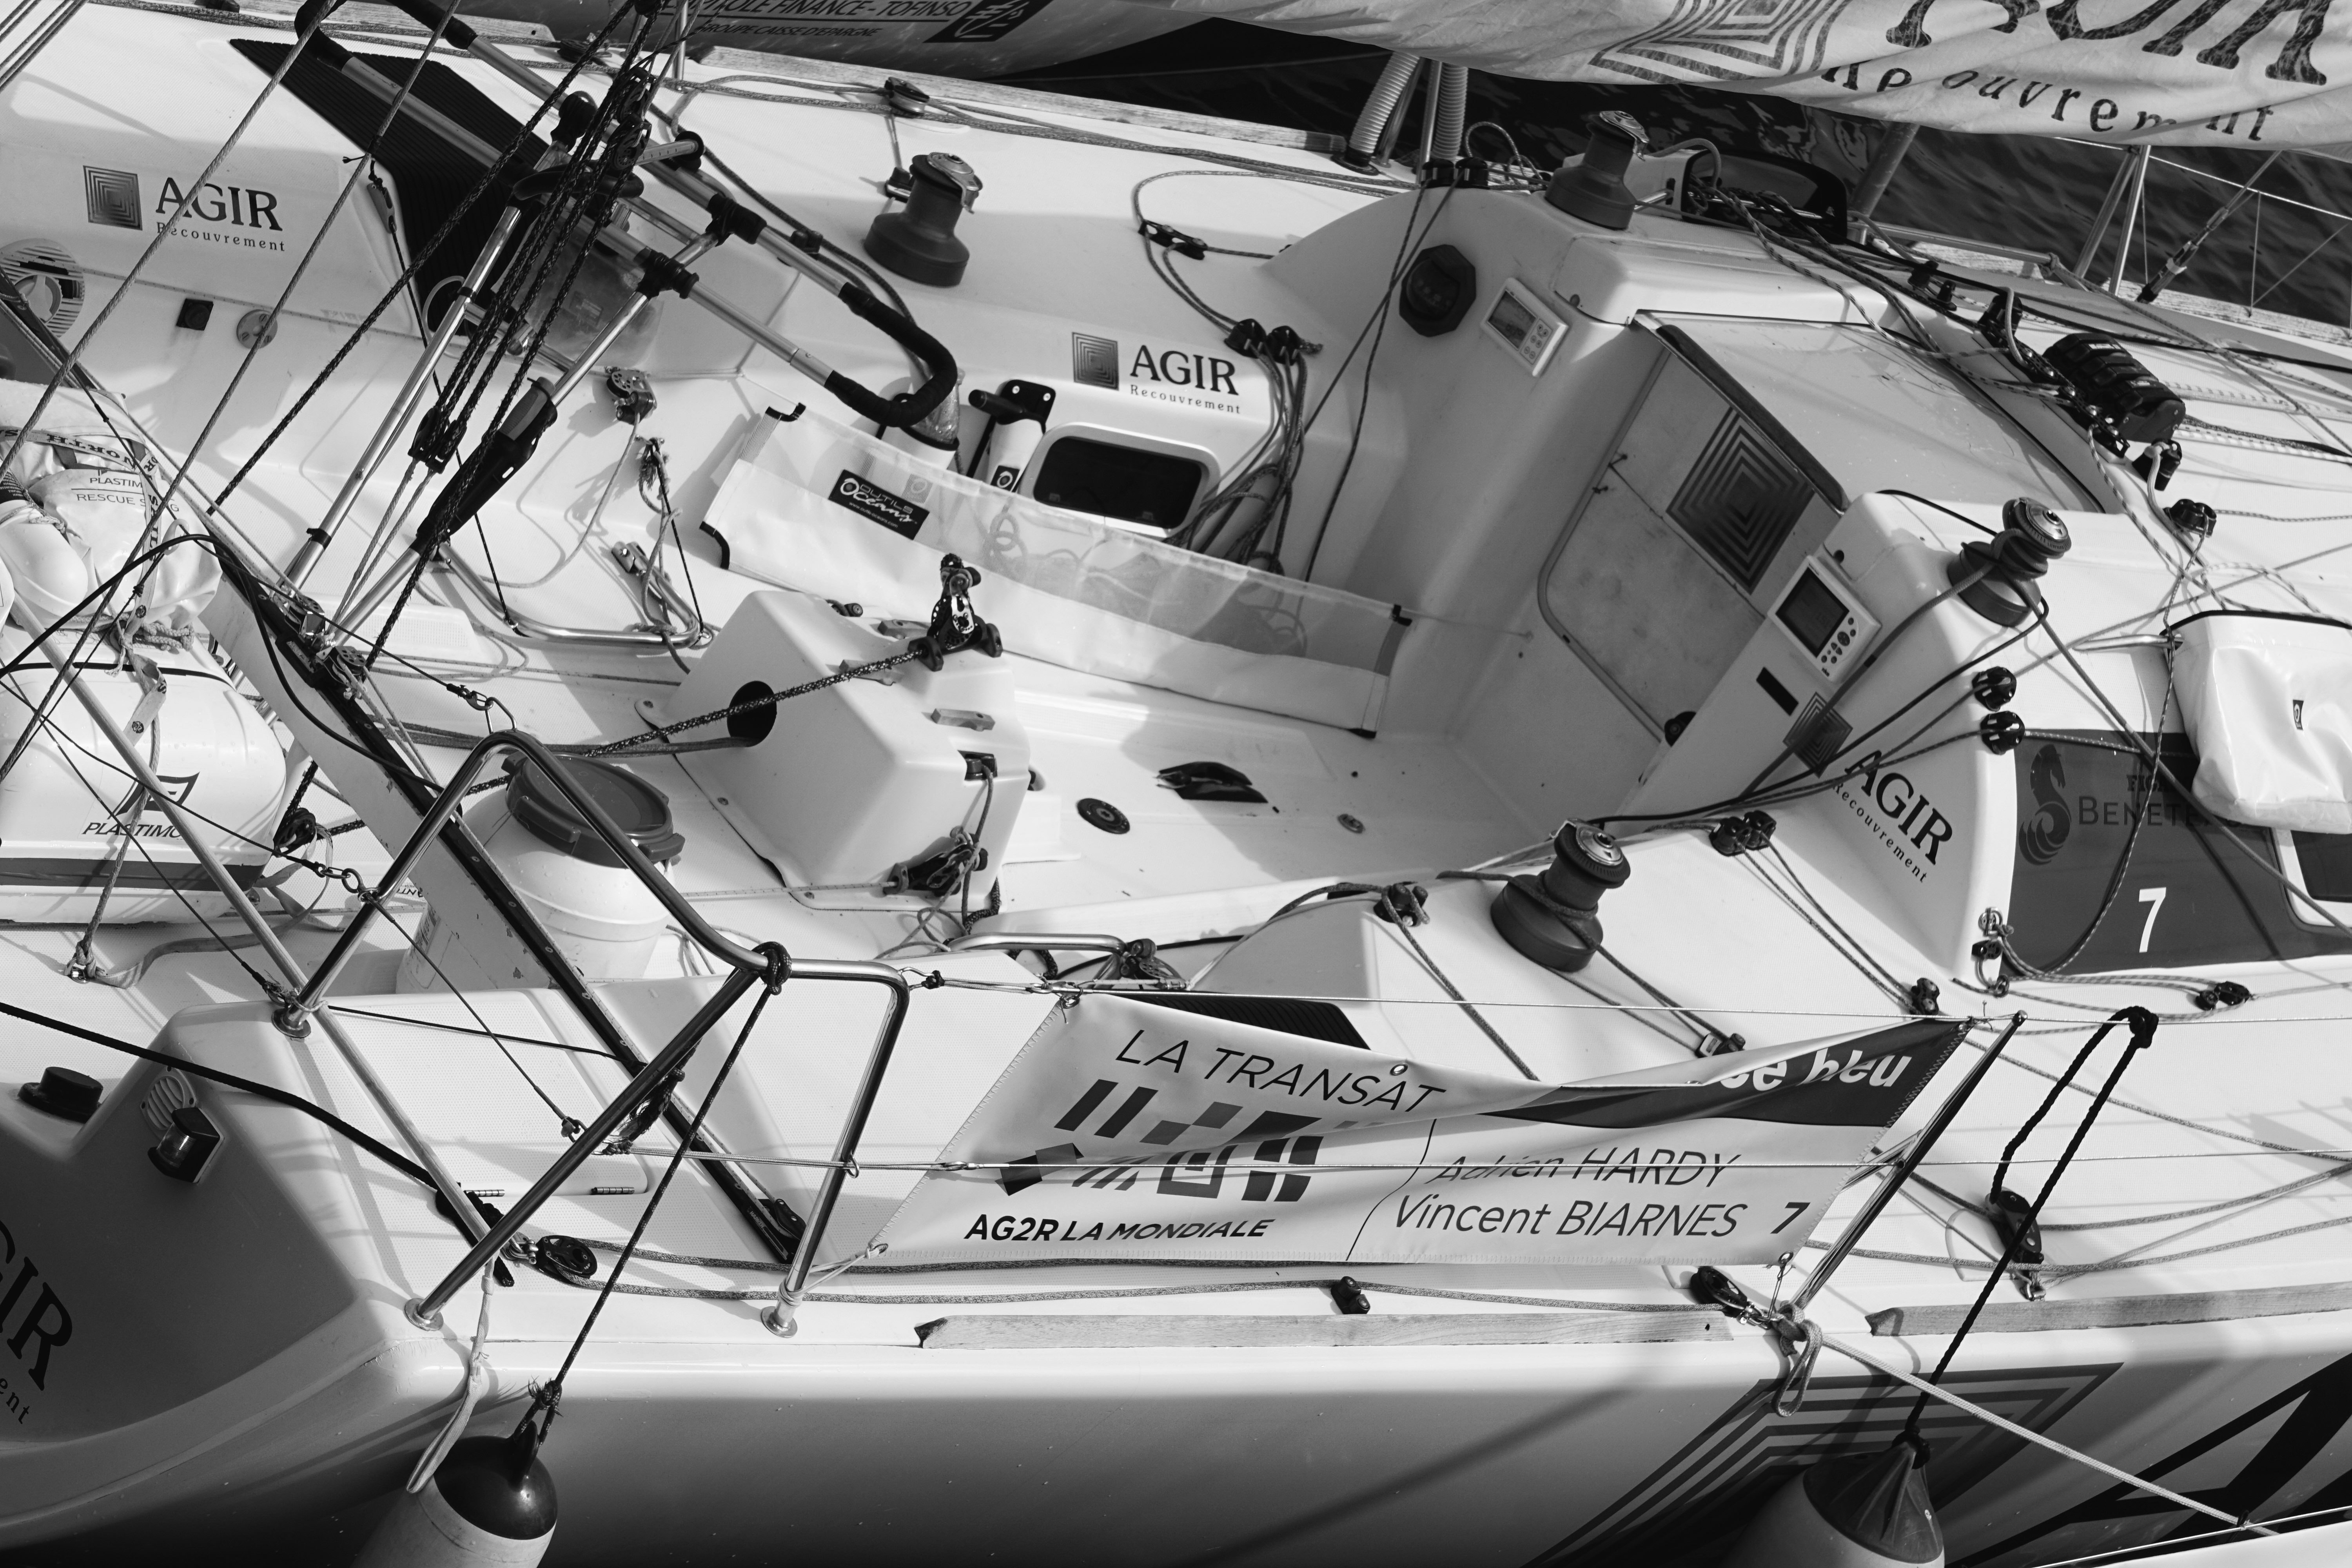 White and black boat photo